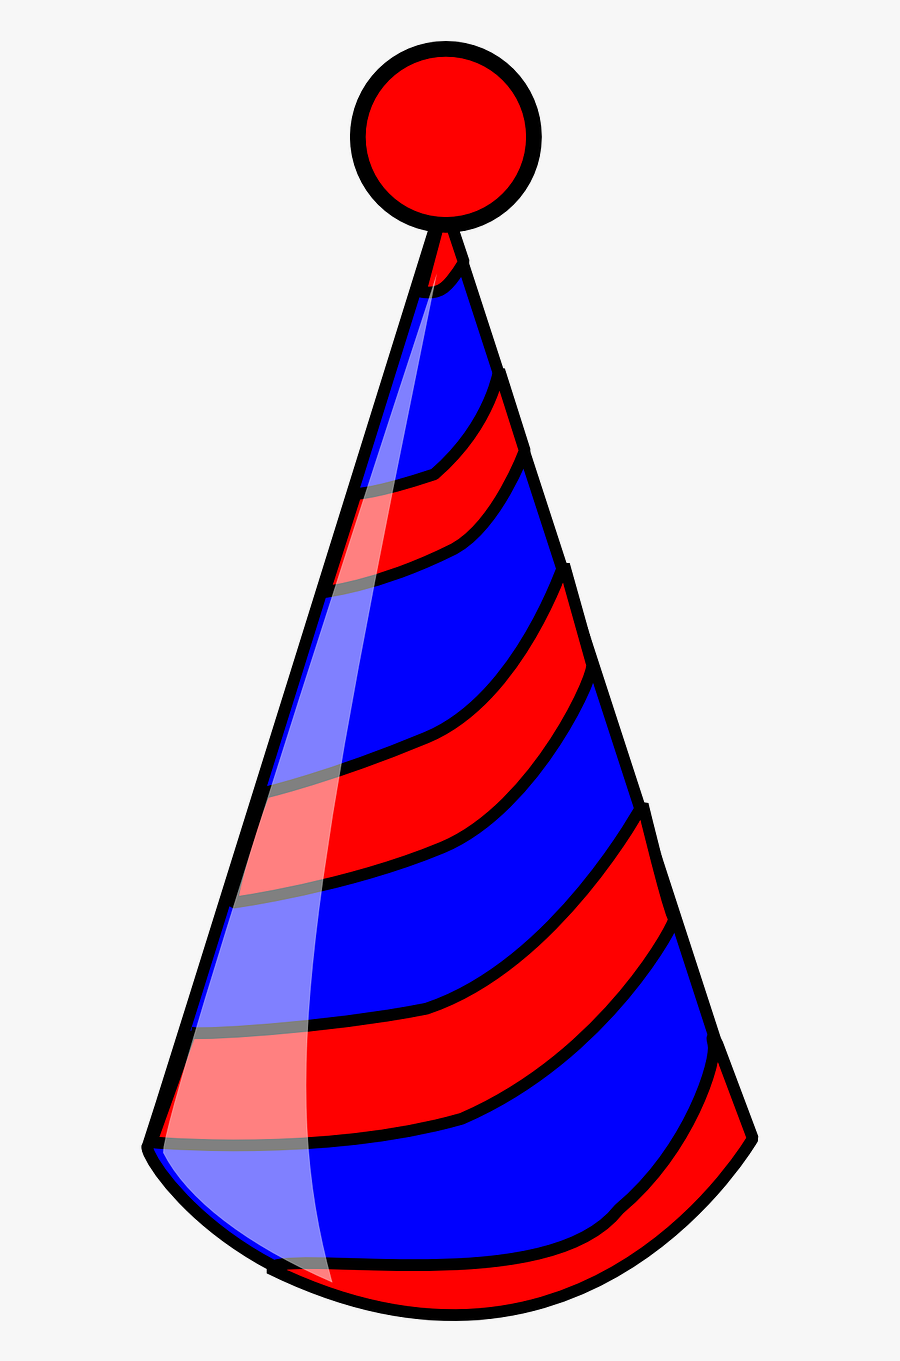 Hat Birthday Party Celebration Png Image - Red And Blue Party Hat Png, Transparent Clipart